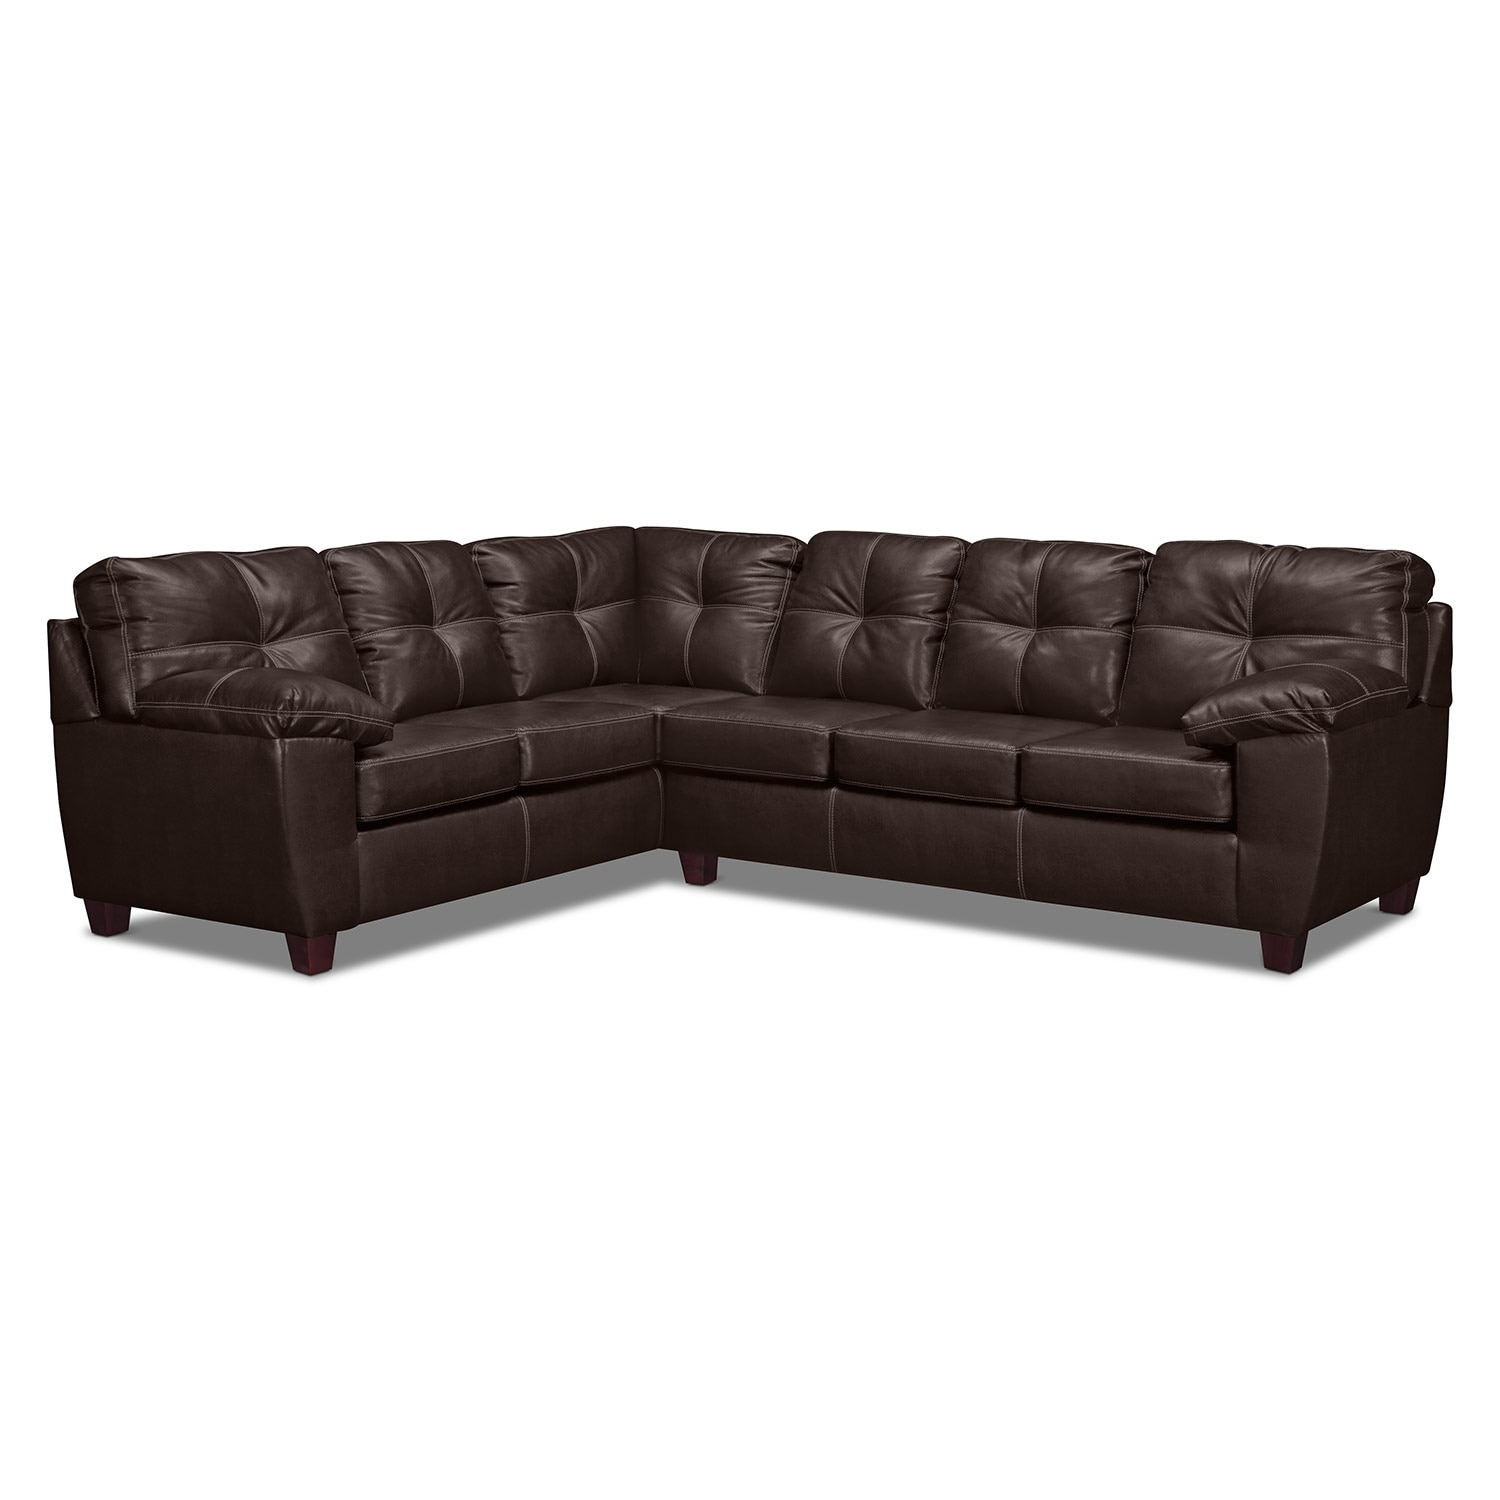 Living Room Furniture - Rialto Brown 2-Pc. Sectional with Right-Facing Innerspring Sleeper